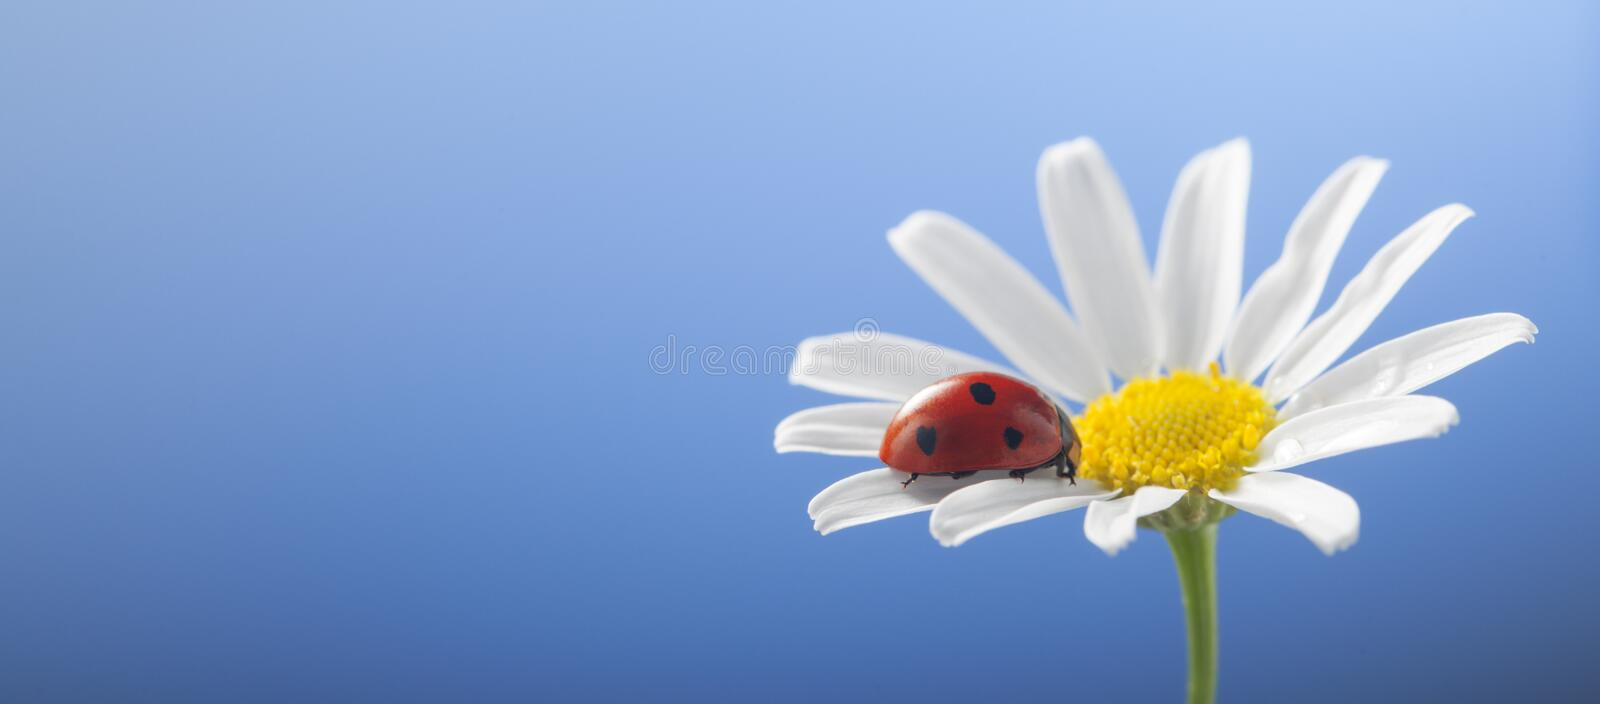 Download Ladybird On Camomile Flower Stock Photo - Image of beauty, flower: 113616900